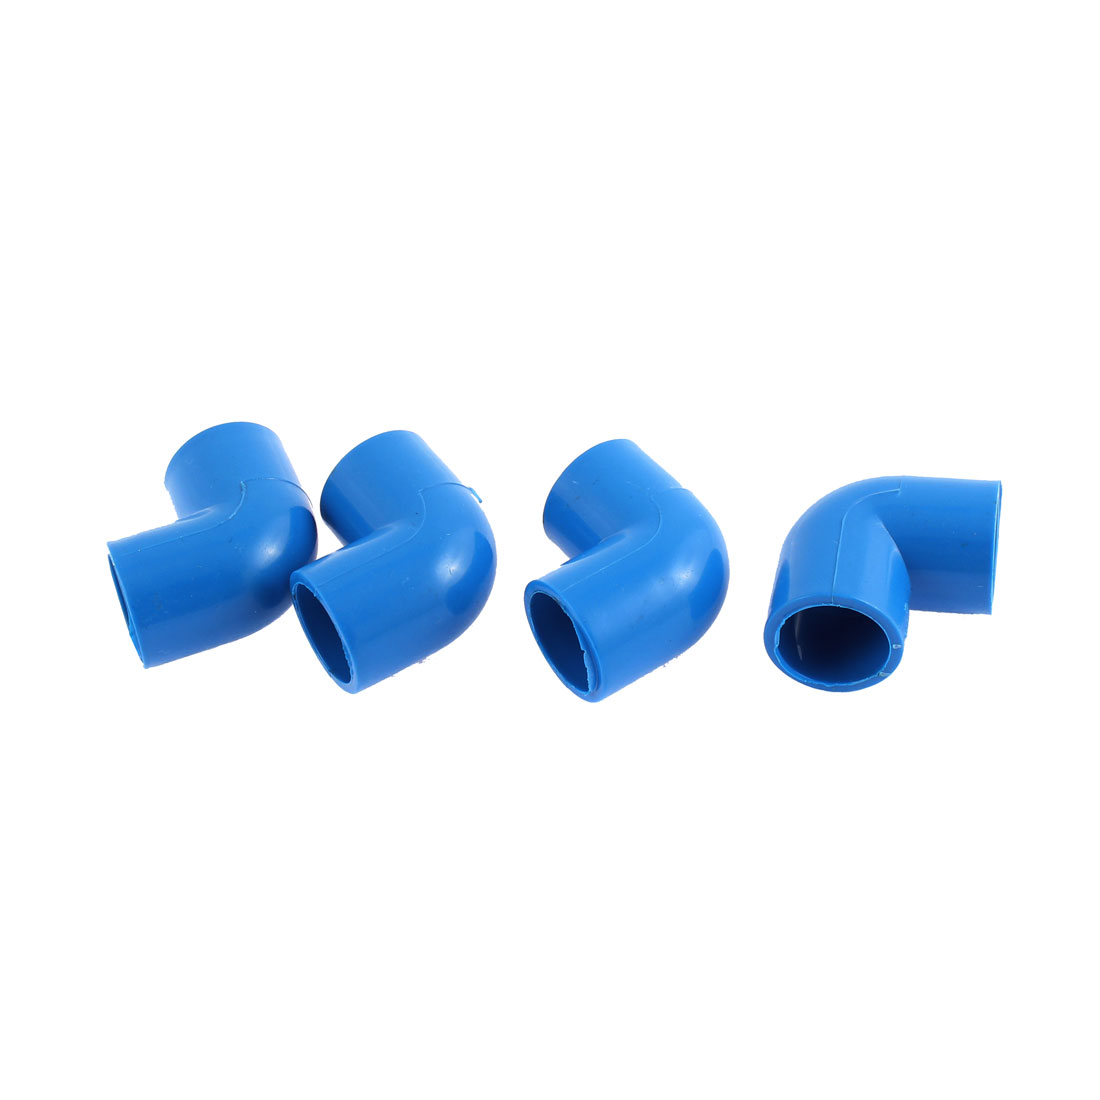 PVC Two Way L Shaped Water Pipe Hose Connector Blue 4PCS